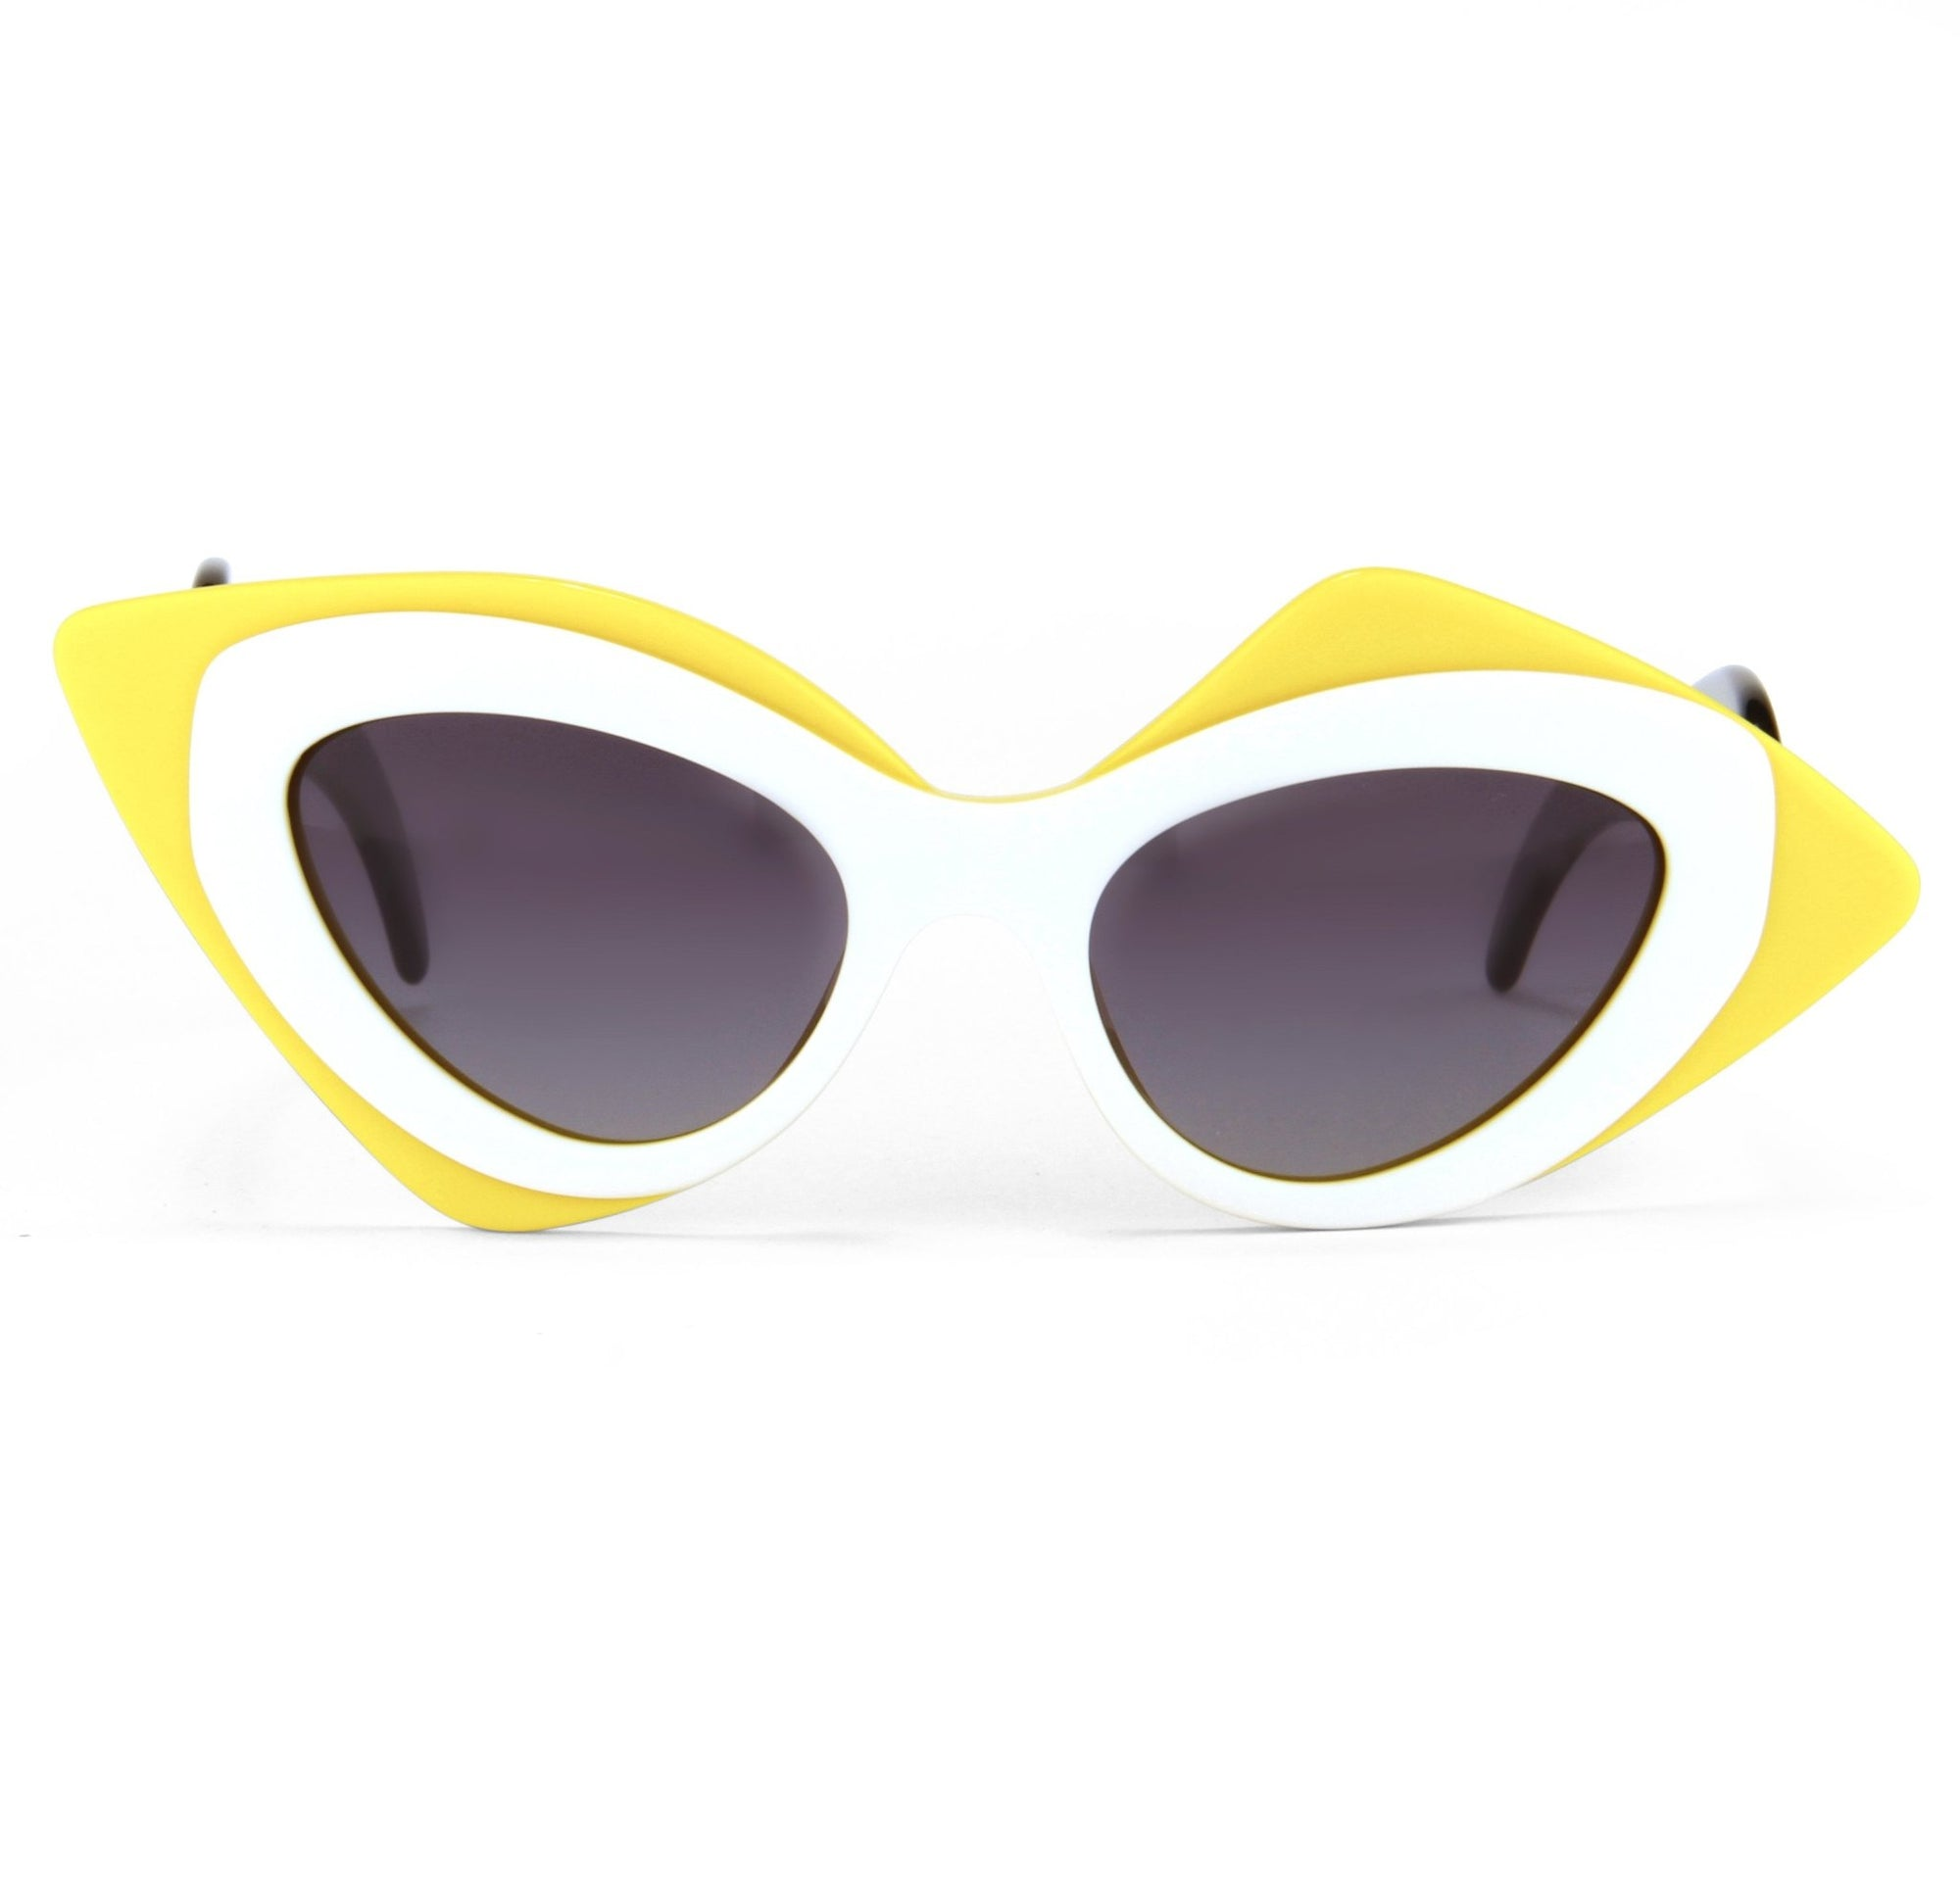 Prabal Gurung Sunglasses Cat Eye Mask Female Yellow And White Frame Category 3 Dark Grey Lenses PG17C5SUN - Watches & Crystals